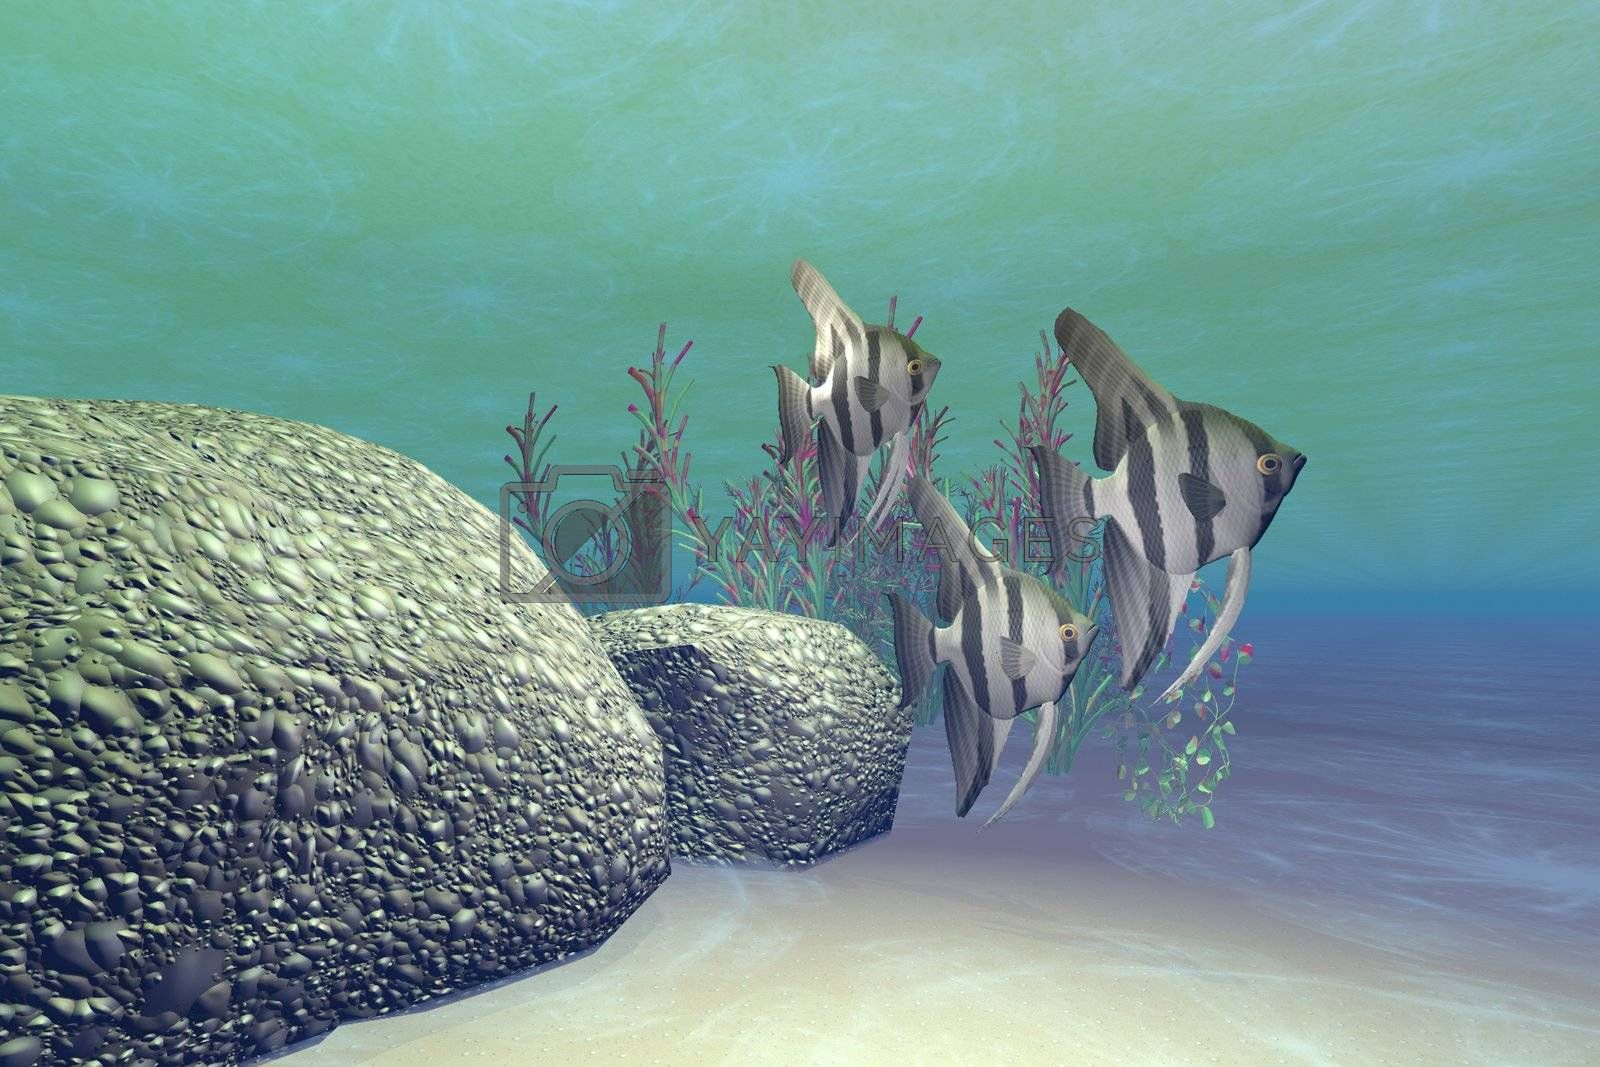 Royalty free image of ANGEL FISH by Catmando